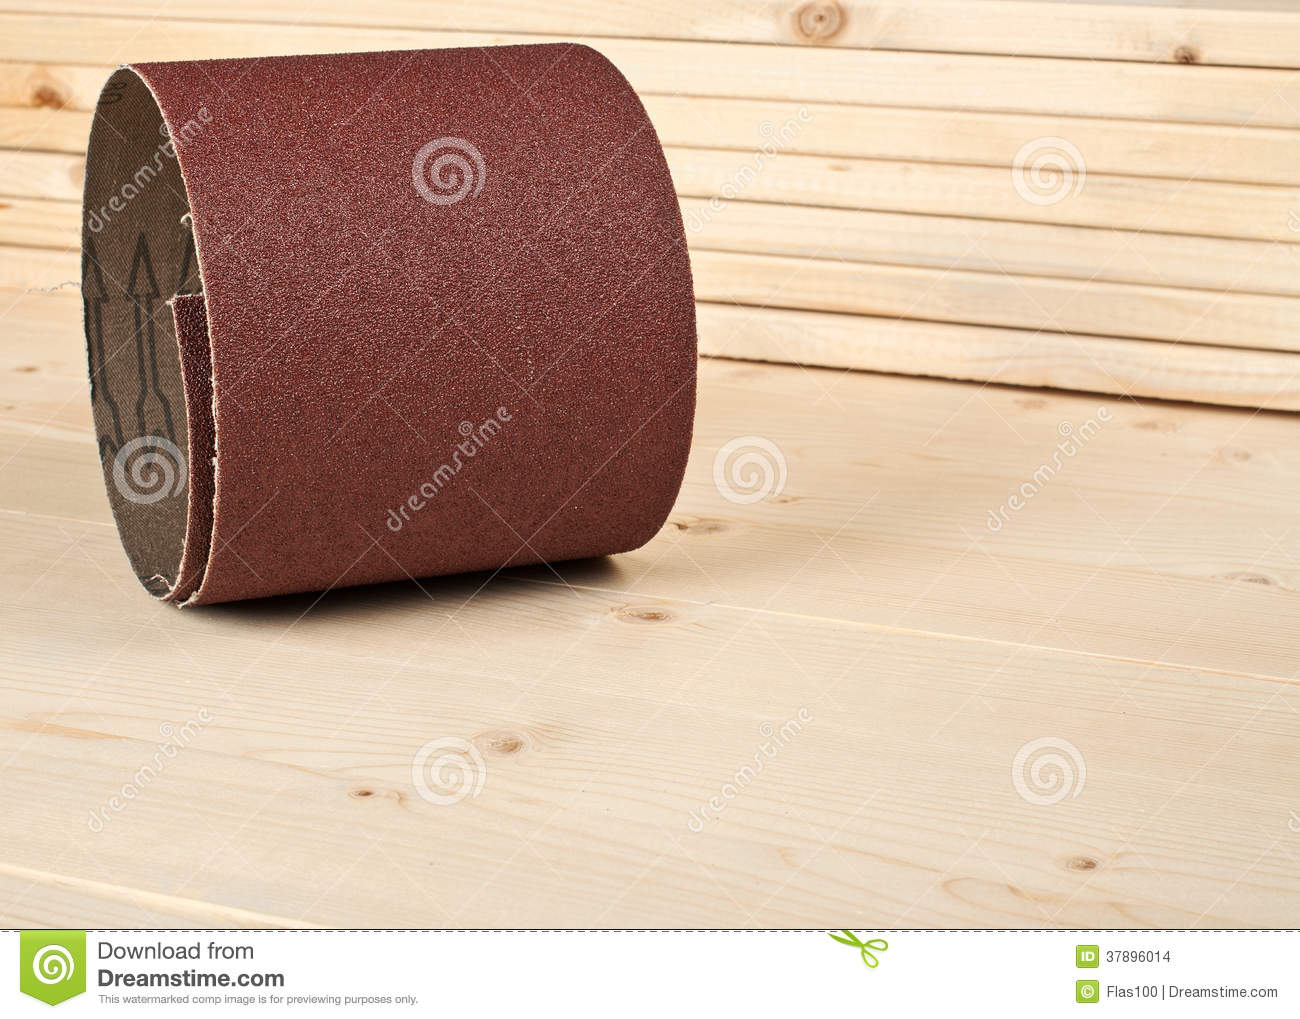 Brown sandpaper on wooden planks